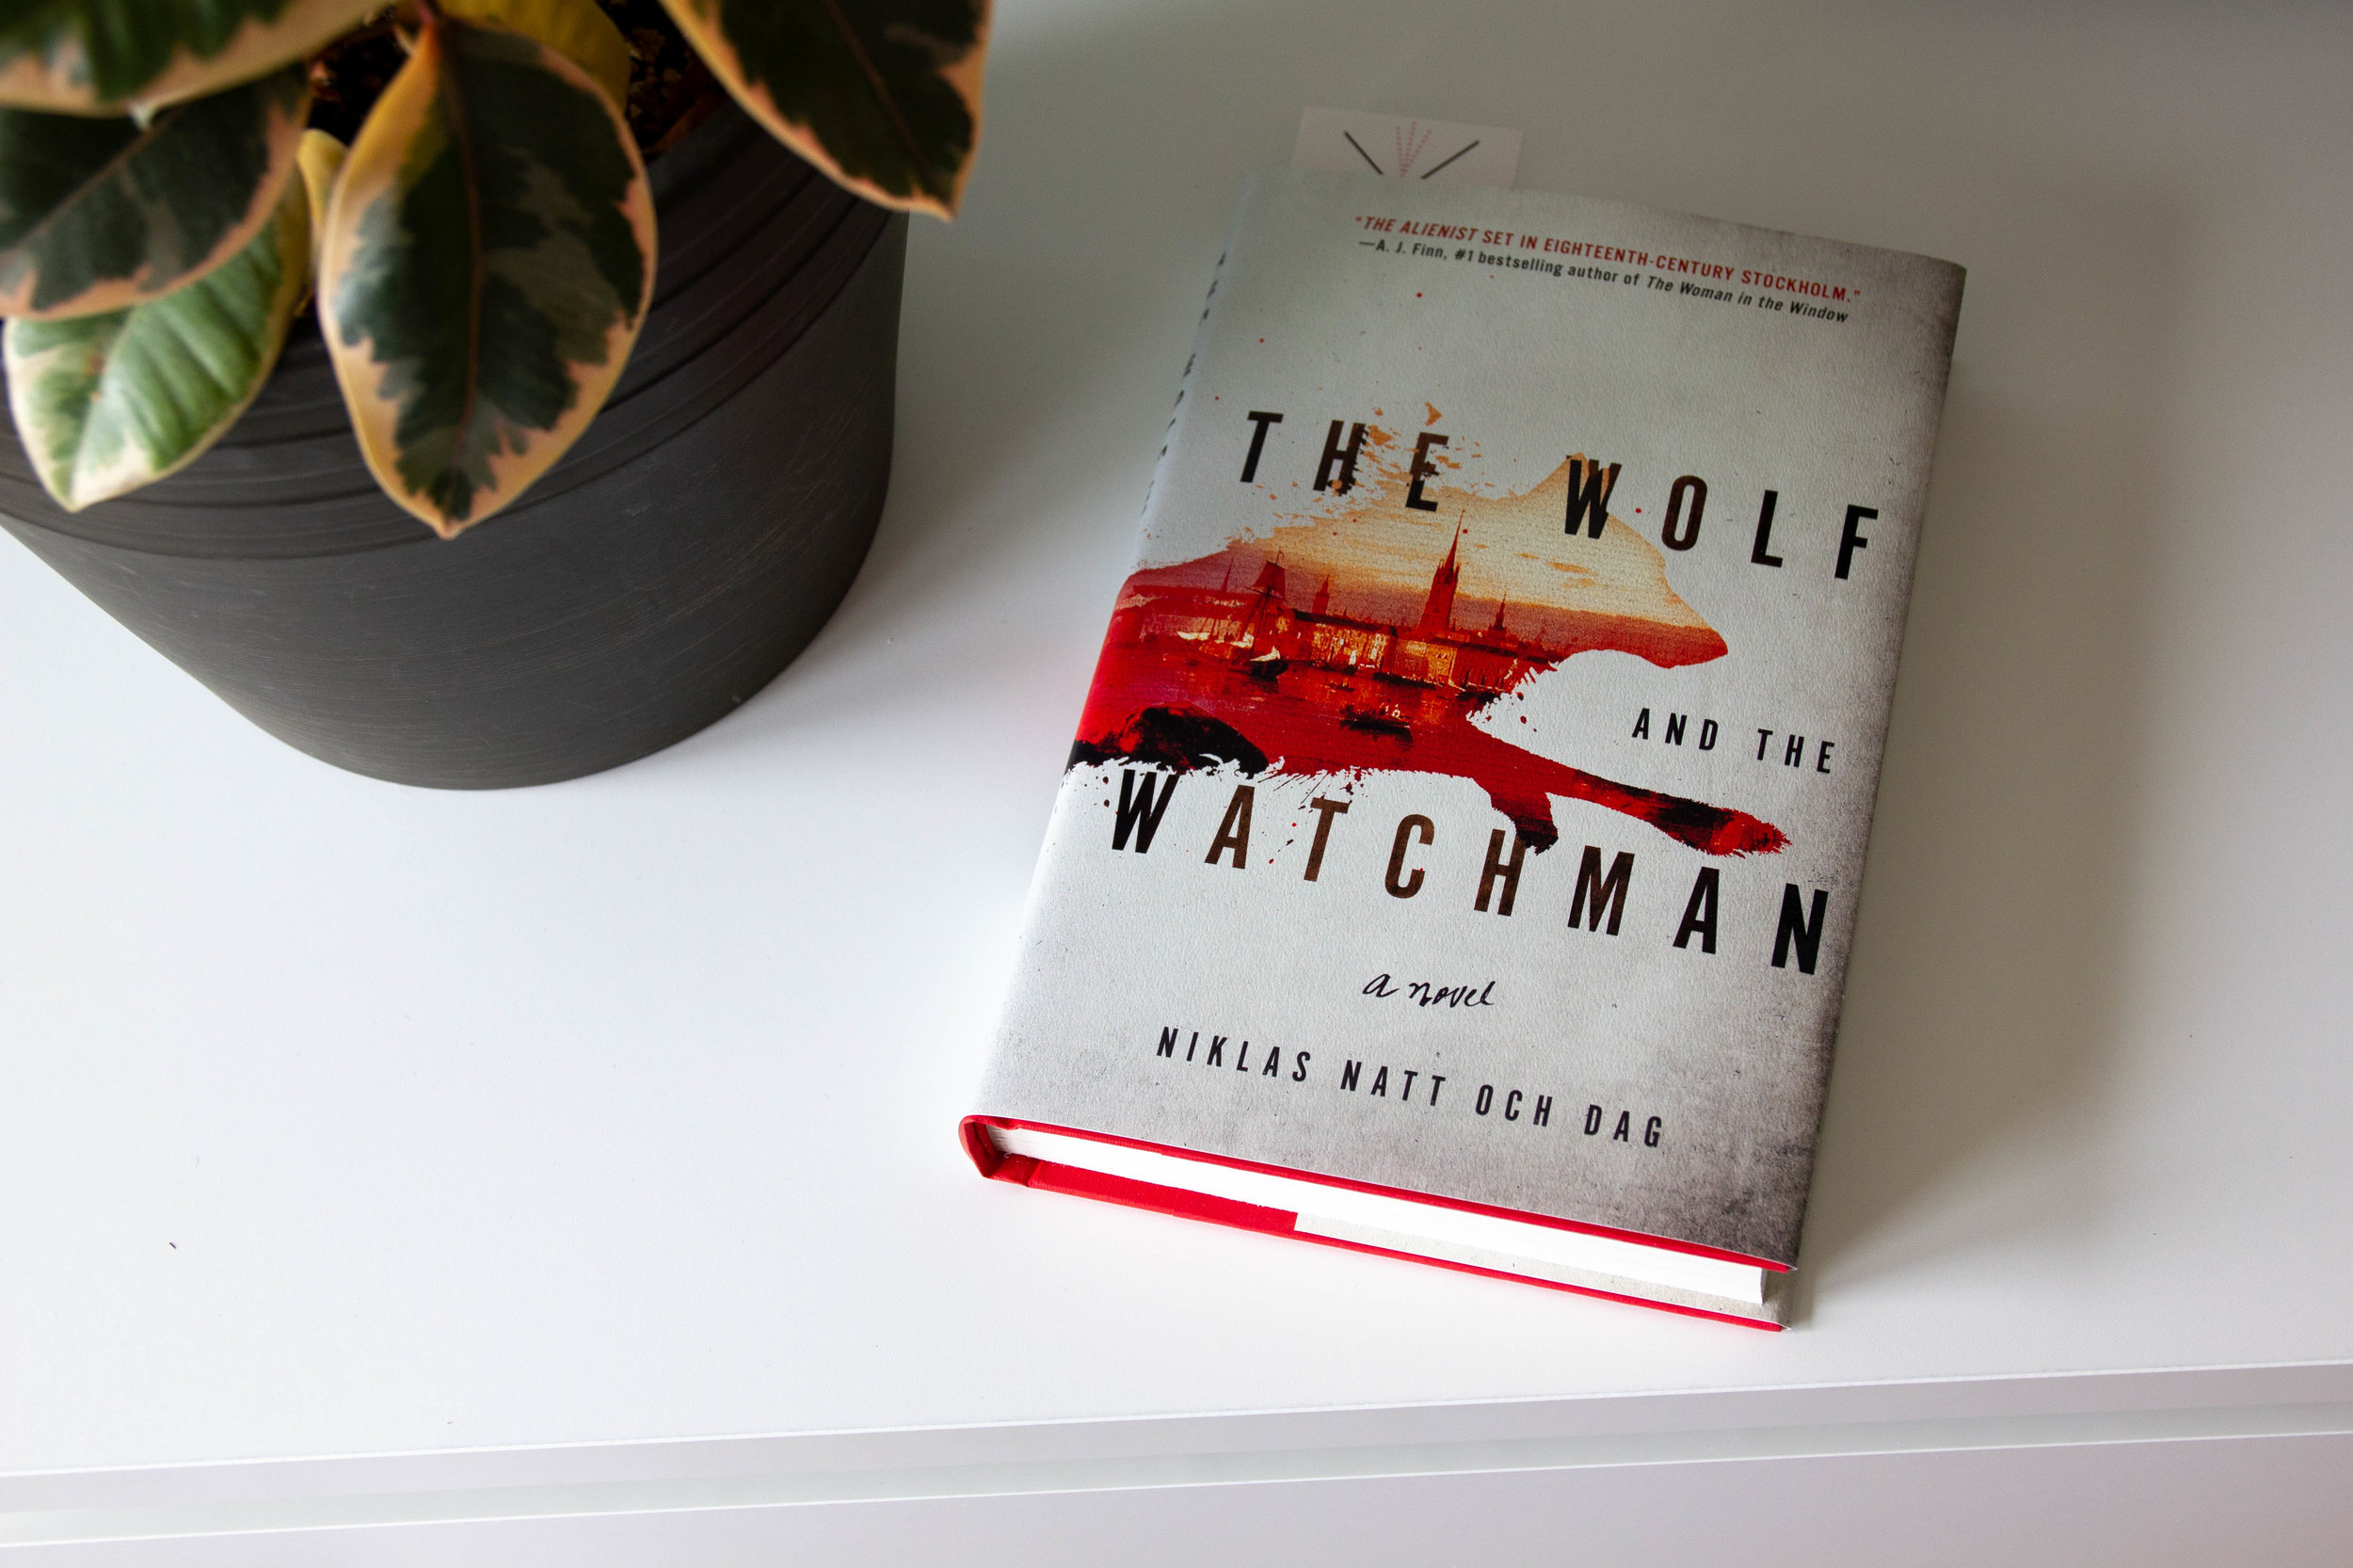 Book Feature - The Wolf and the Watchman by Niklas Natt och Dag